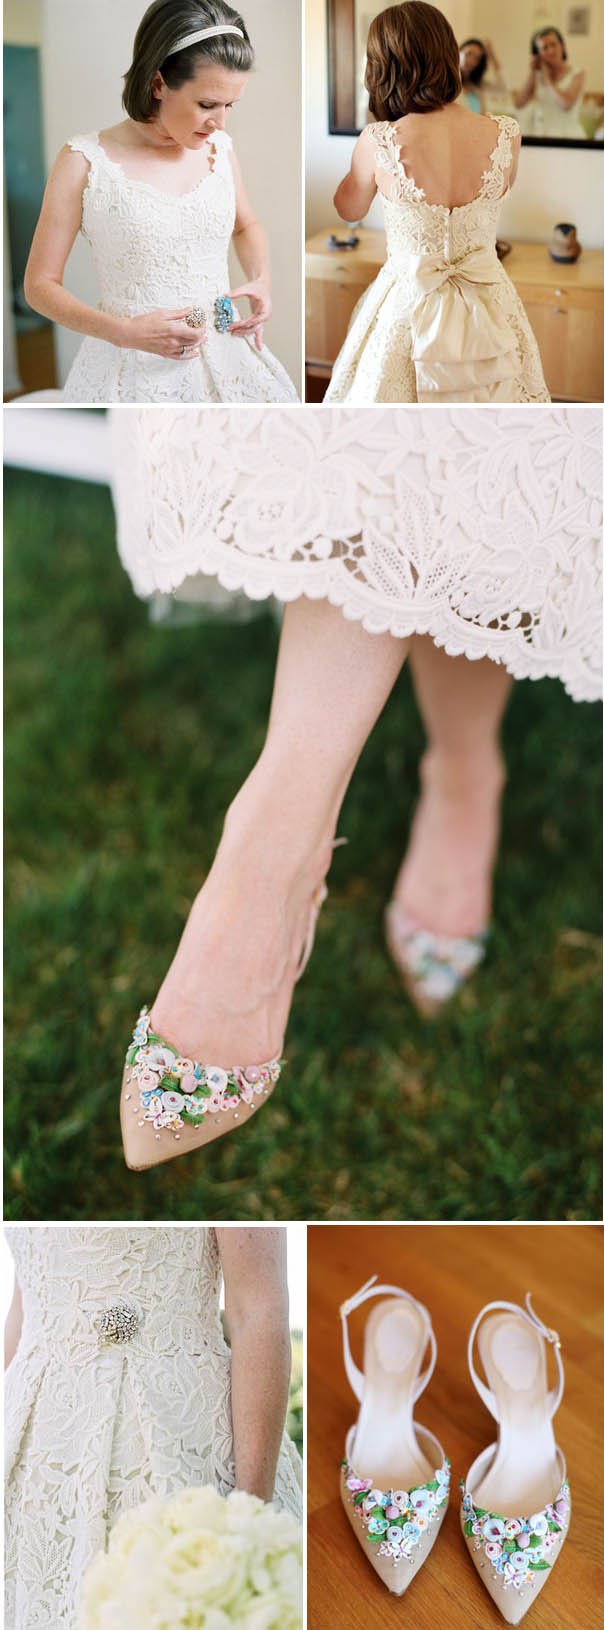 Wedding Shoes New 2017 Designer Bridal Shoe Collections